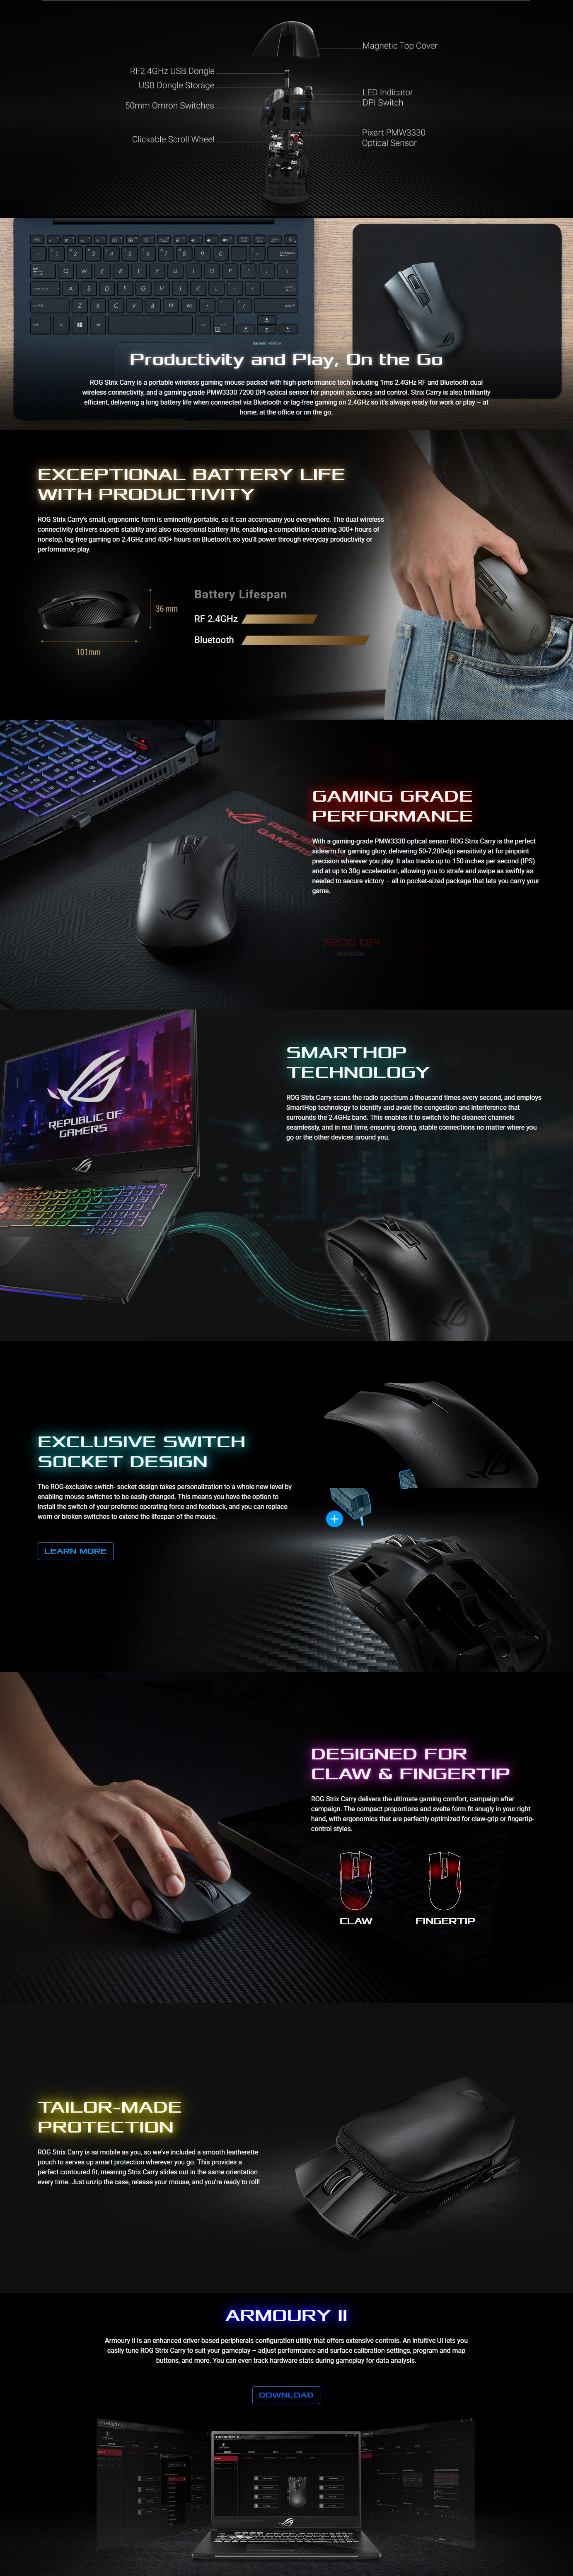 A large marketing image providing additional information about the product ASUS ROG Strix Carry Wireless Gaming Mouse - Additional alt info not provided